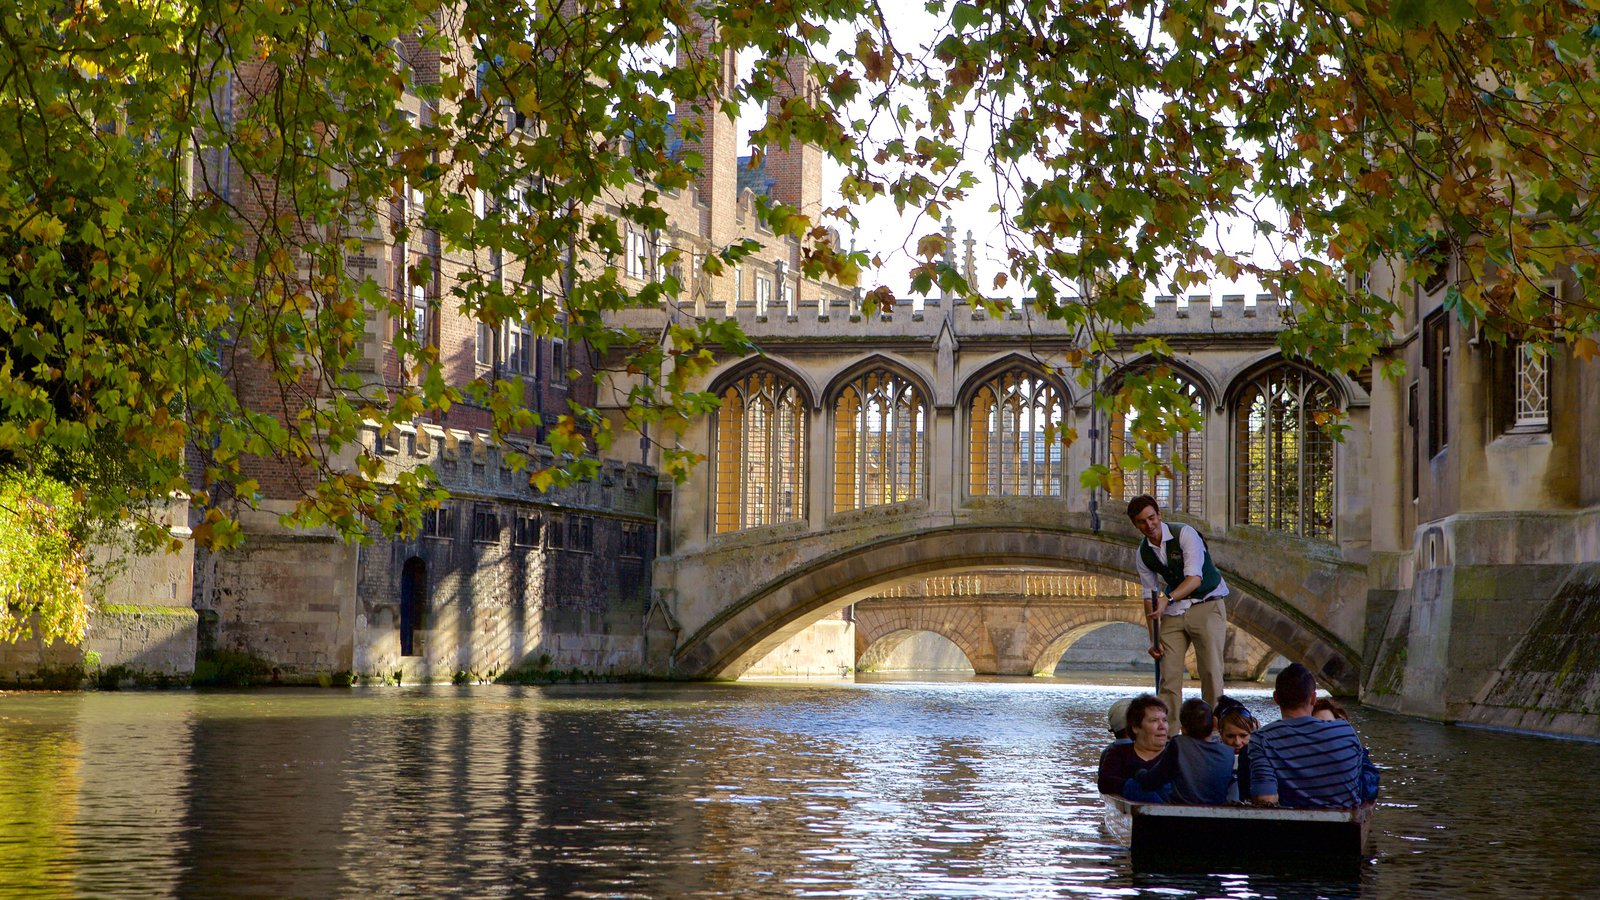 107993-Bridge-Of-Sighs-Cambridge